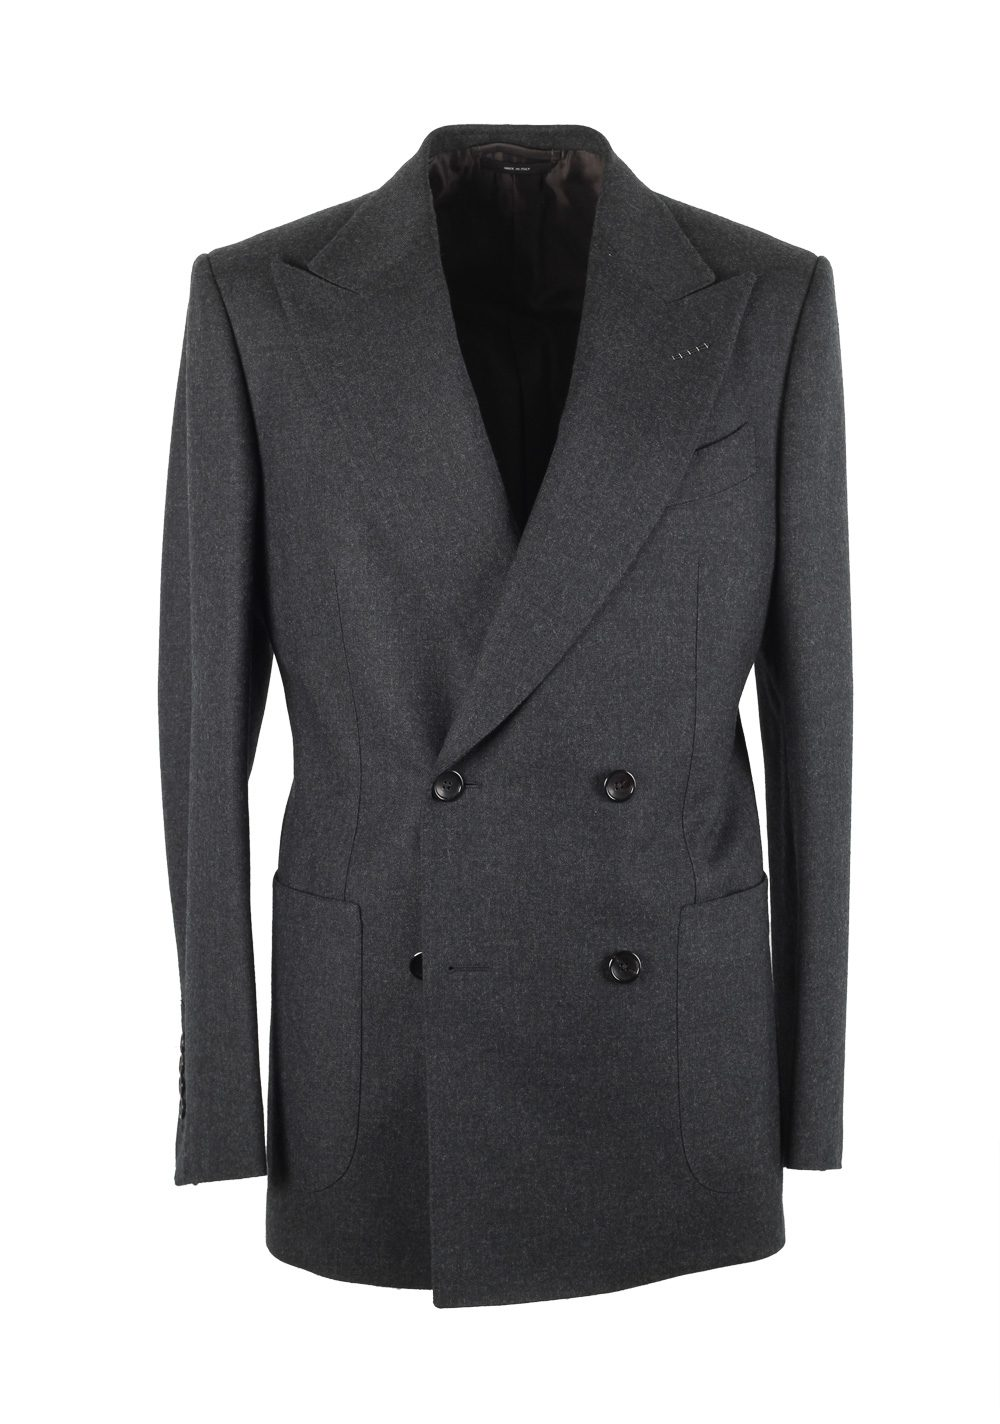 TOM FORD Shelton Double Breasted Gray Suit Size 46 / 36R U.S. Wool | Costume Limité